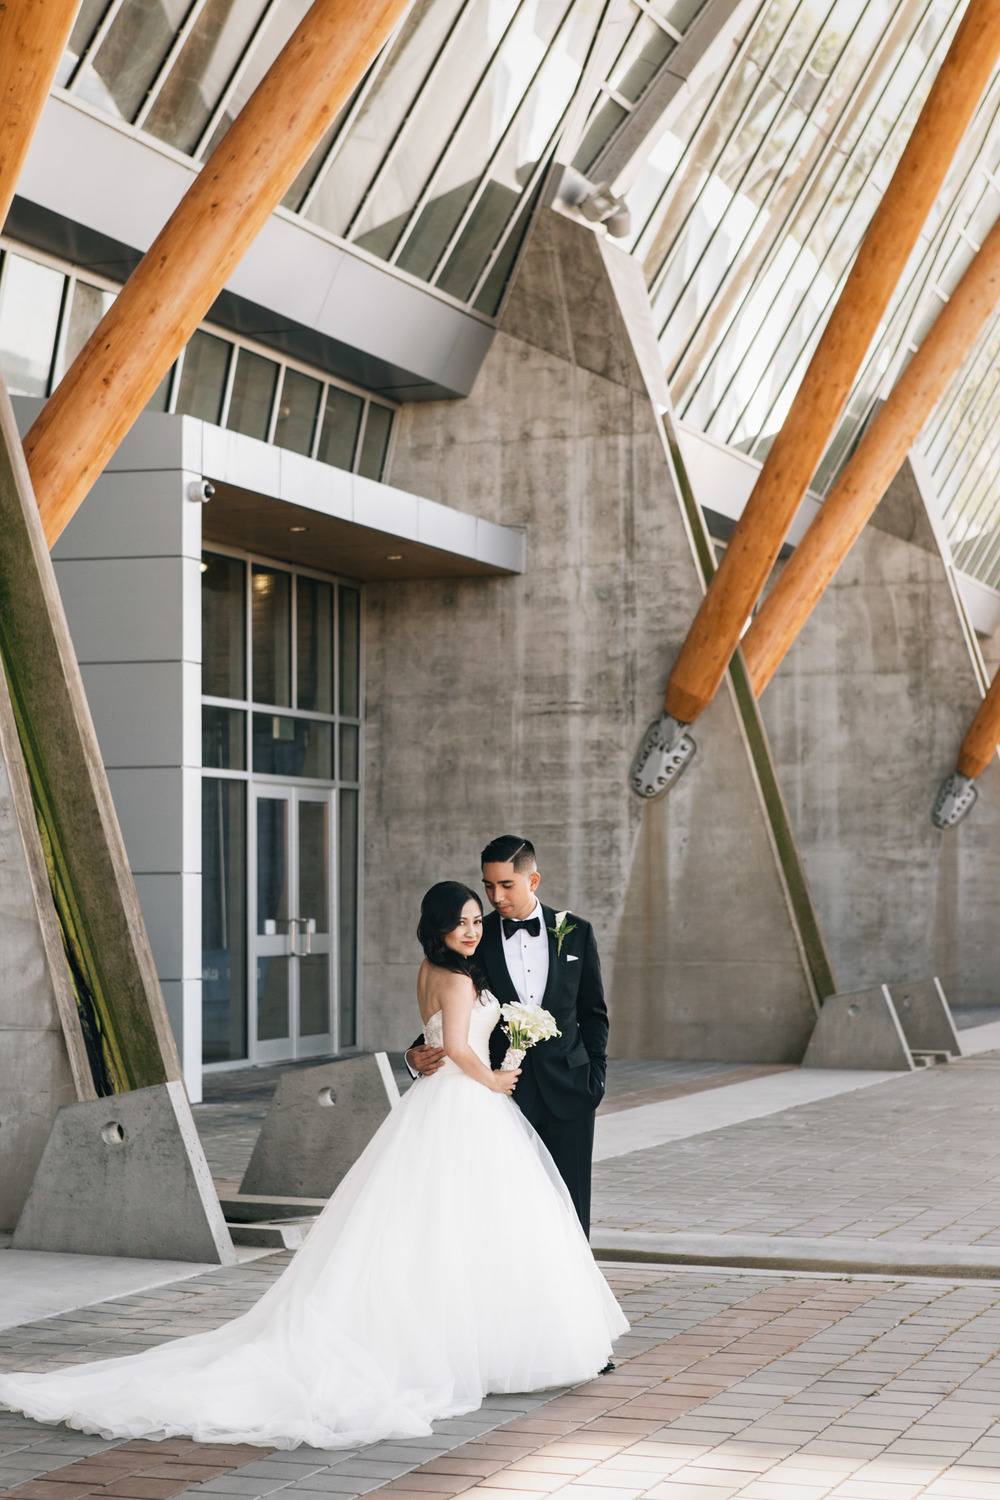 olympic oval wedding photographer richmond bride groom